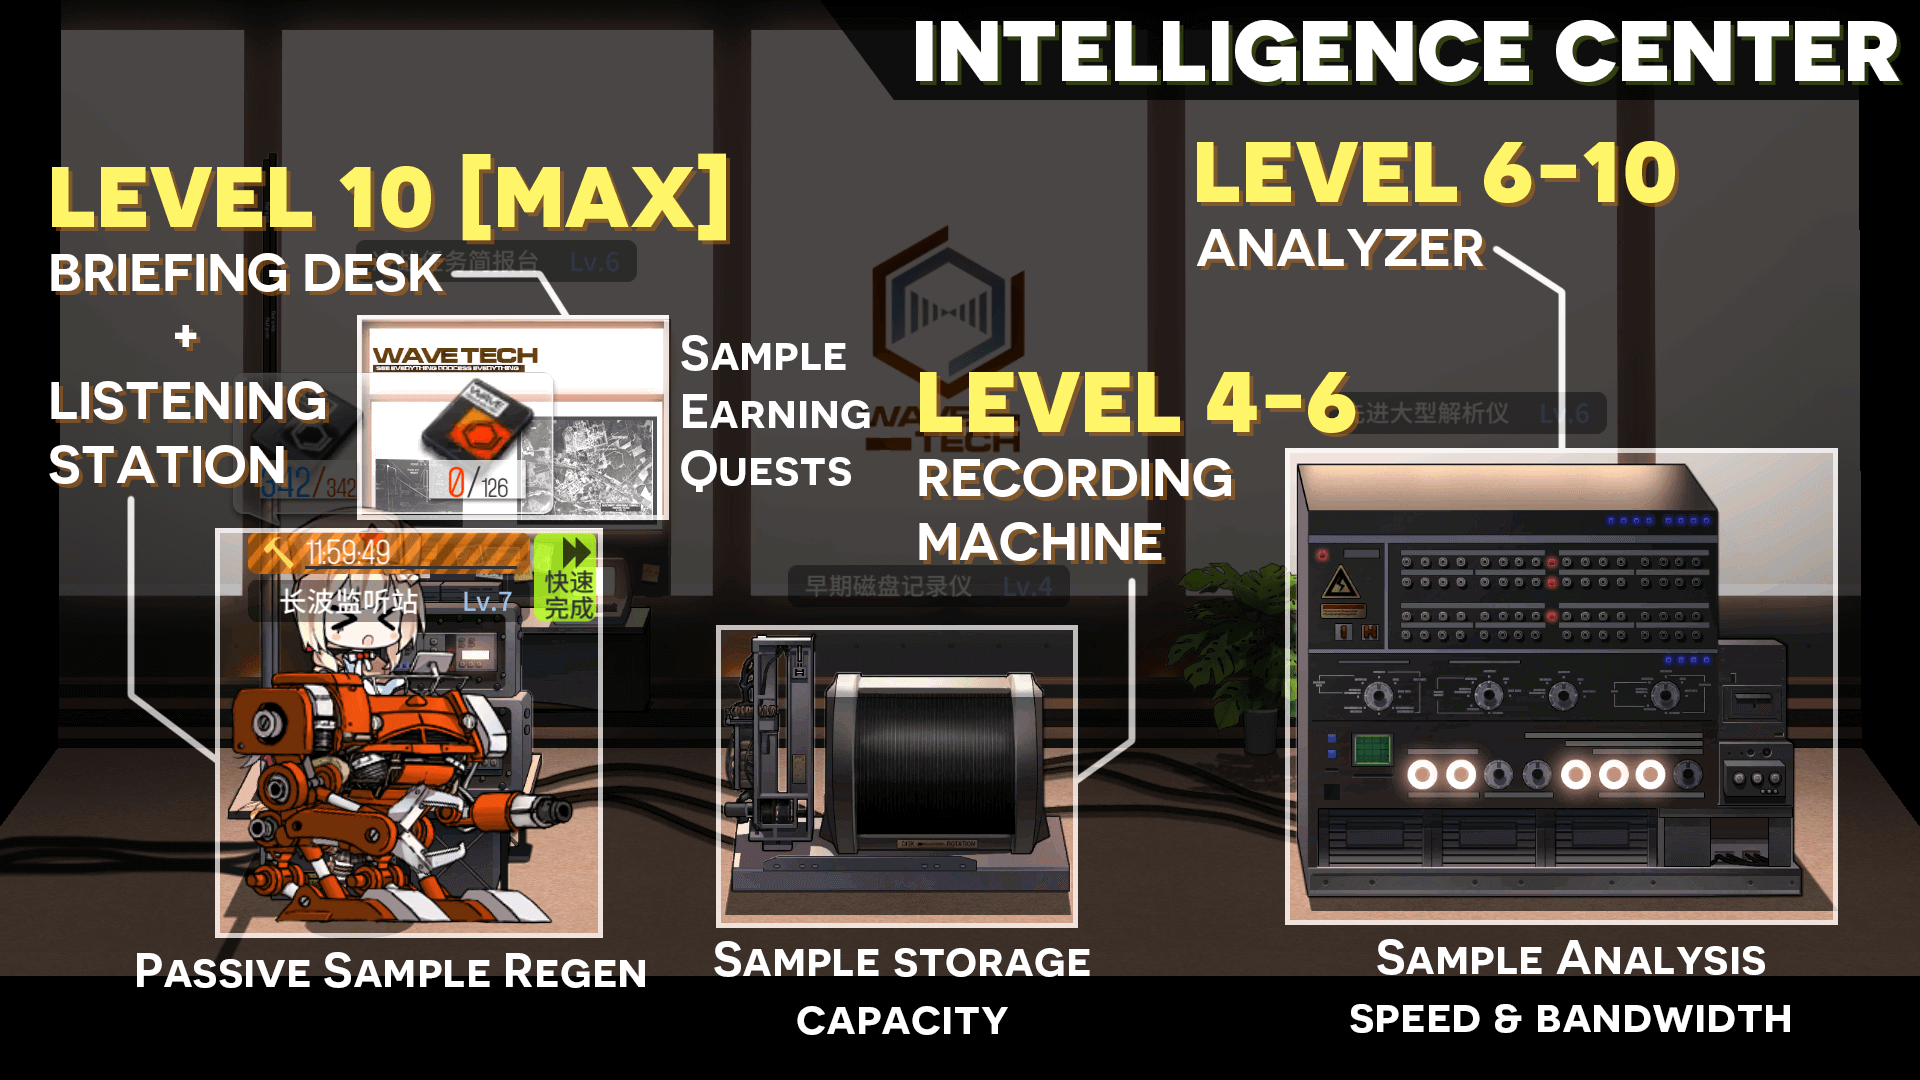 TL;DR Infographic on upgrading the Intelligence Center facilities